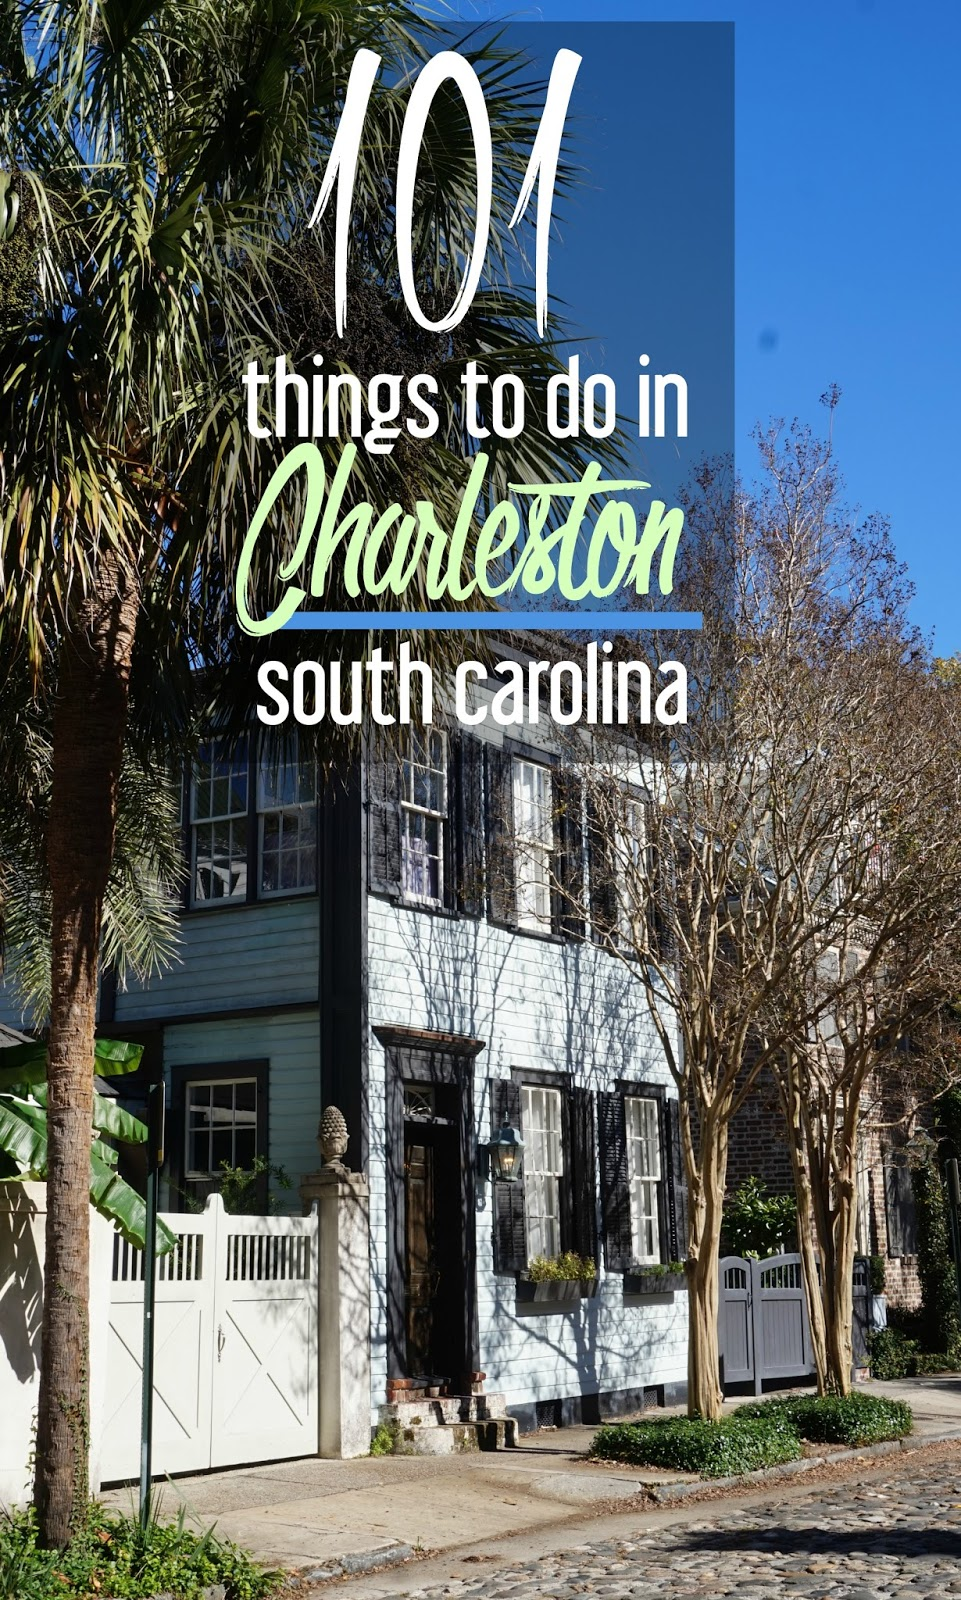 101 things to do in charleston south carolina cosmos